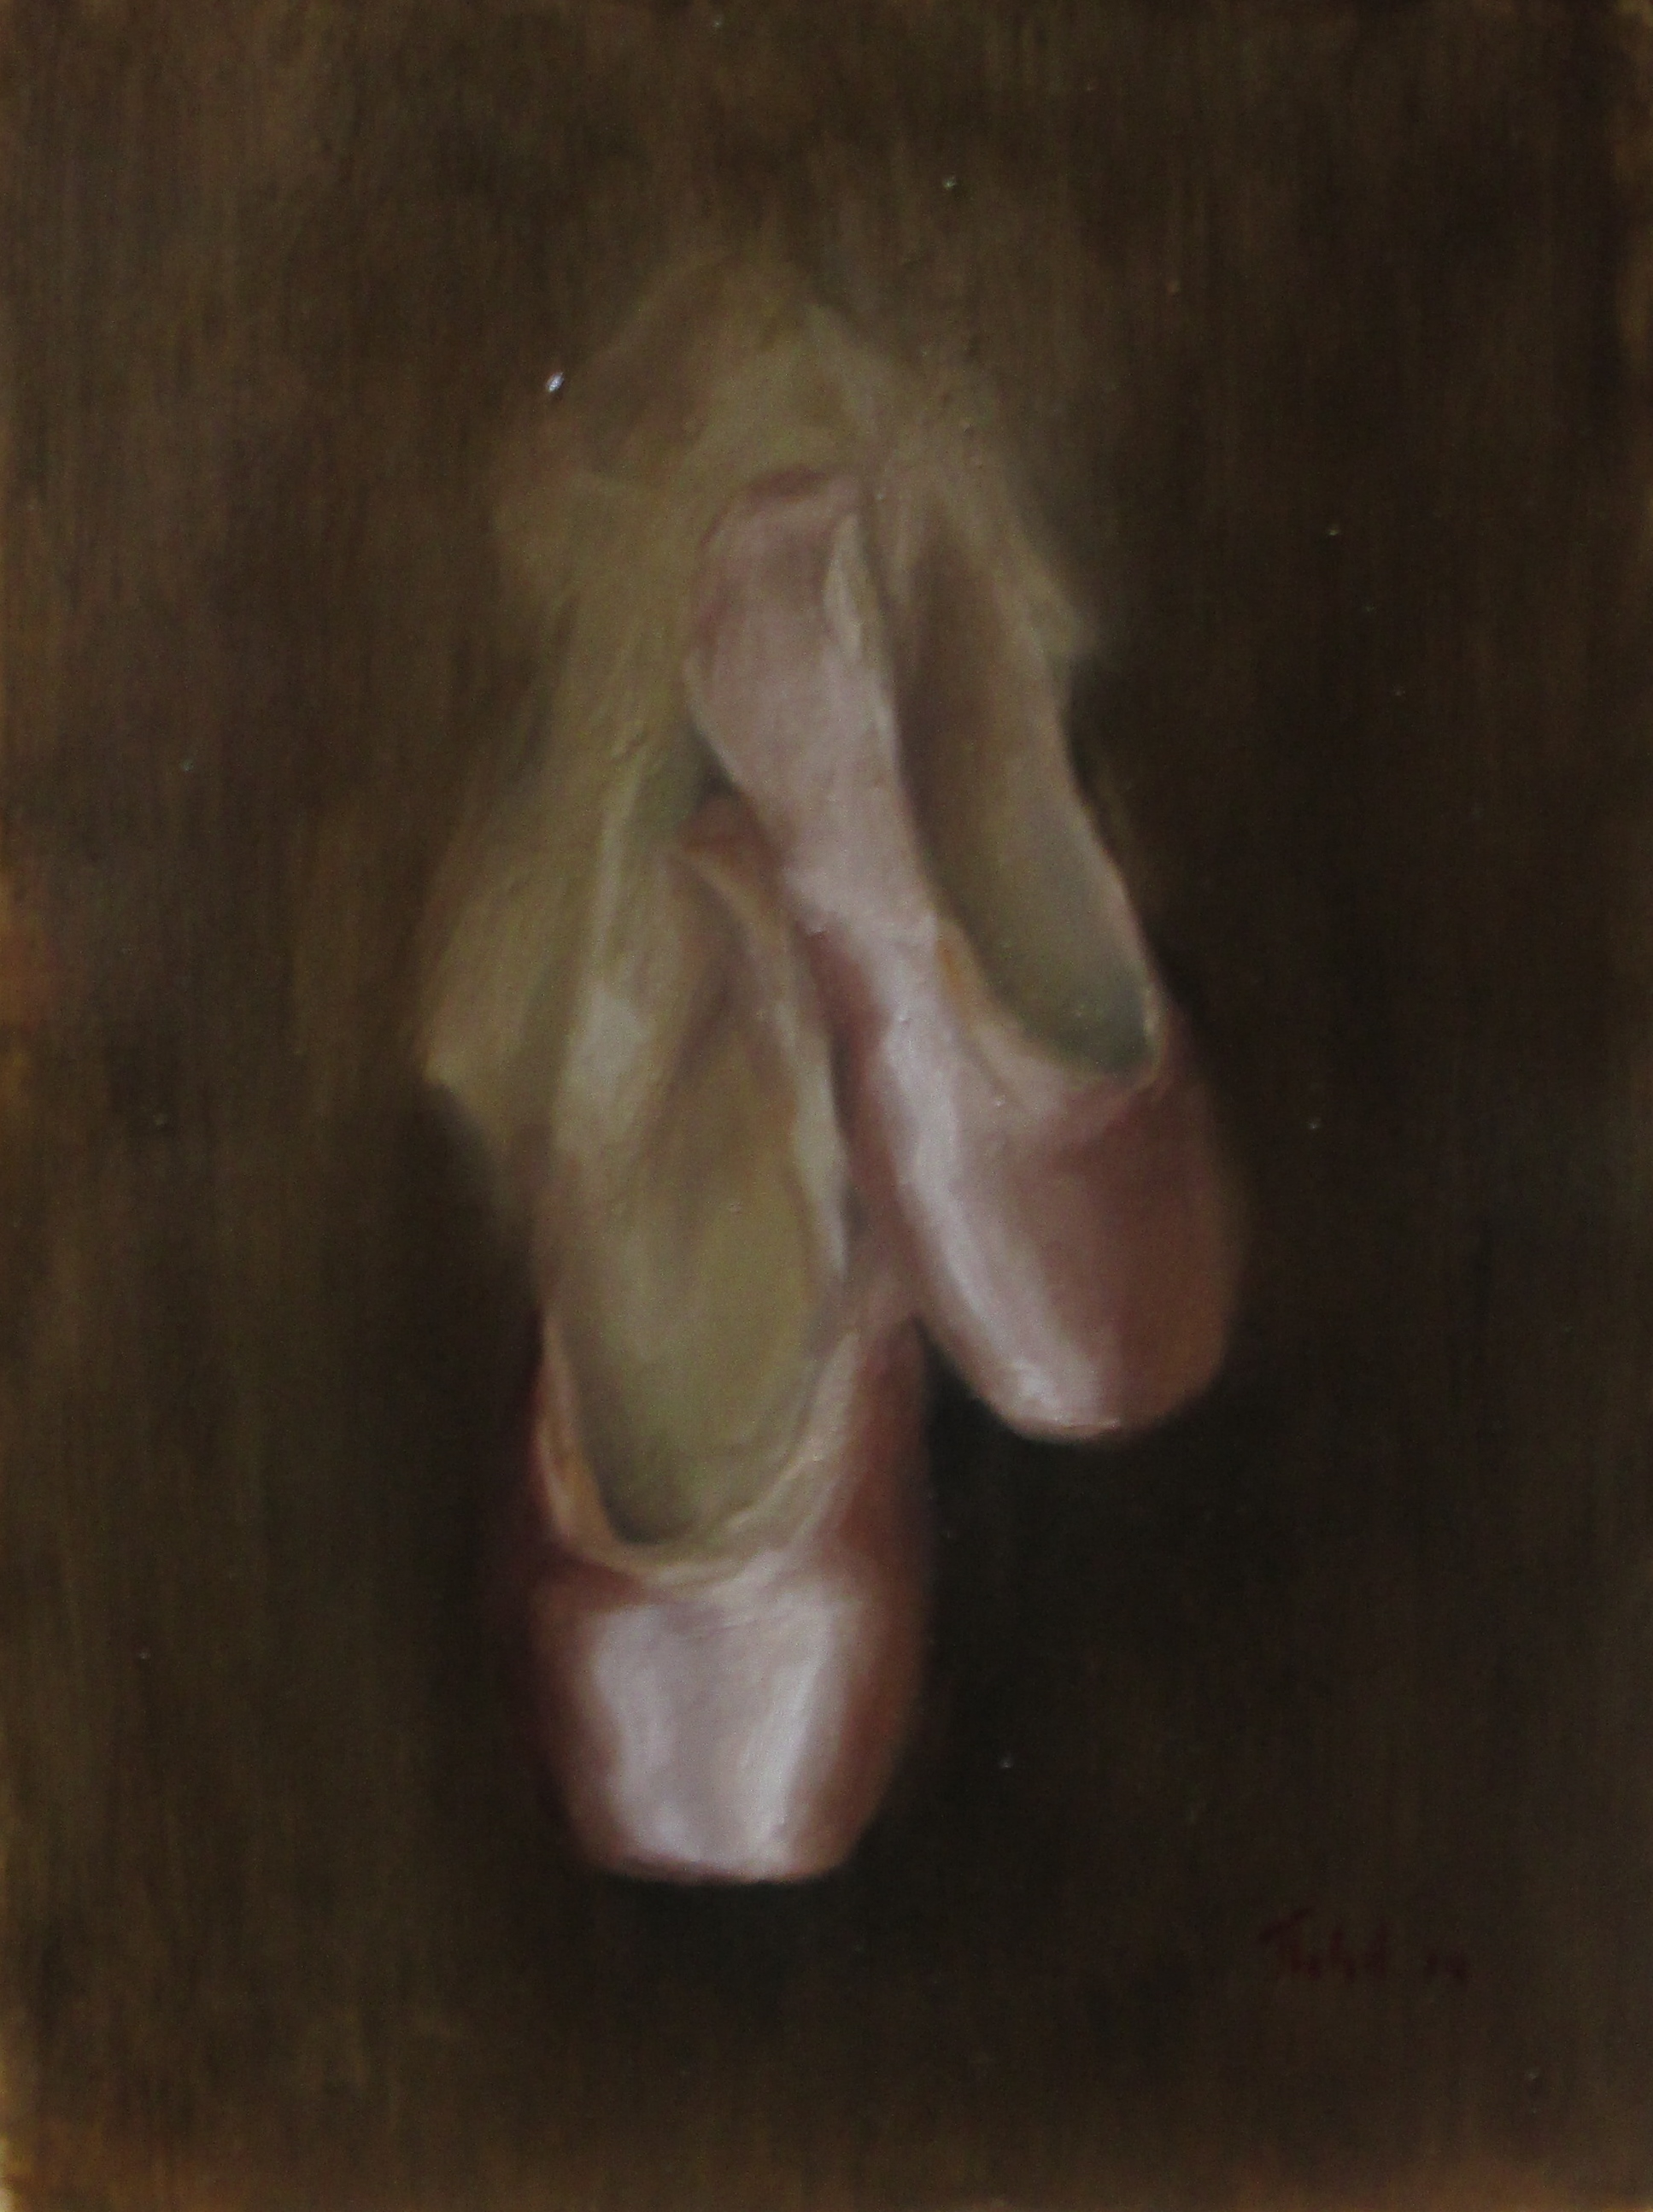 The ballet slippers